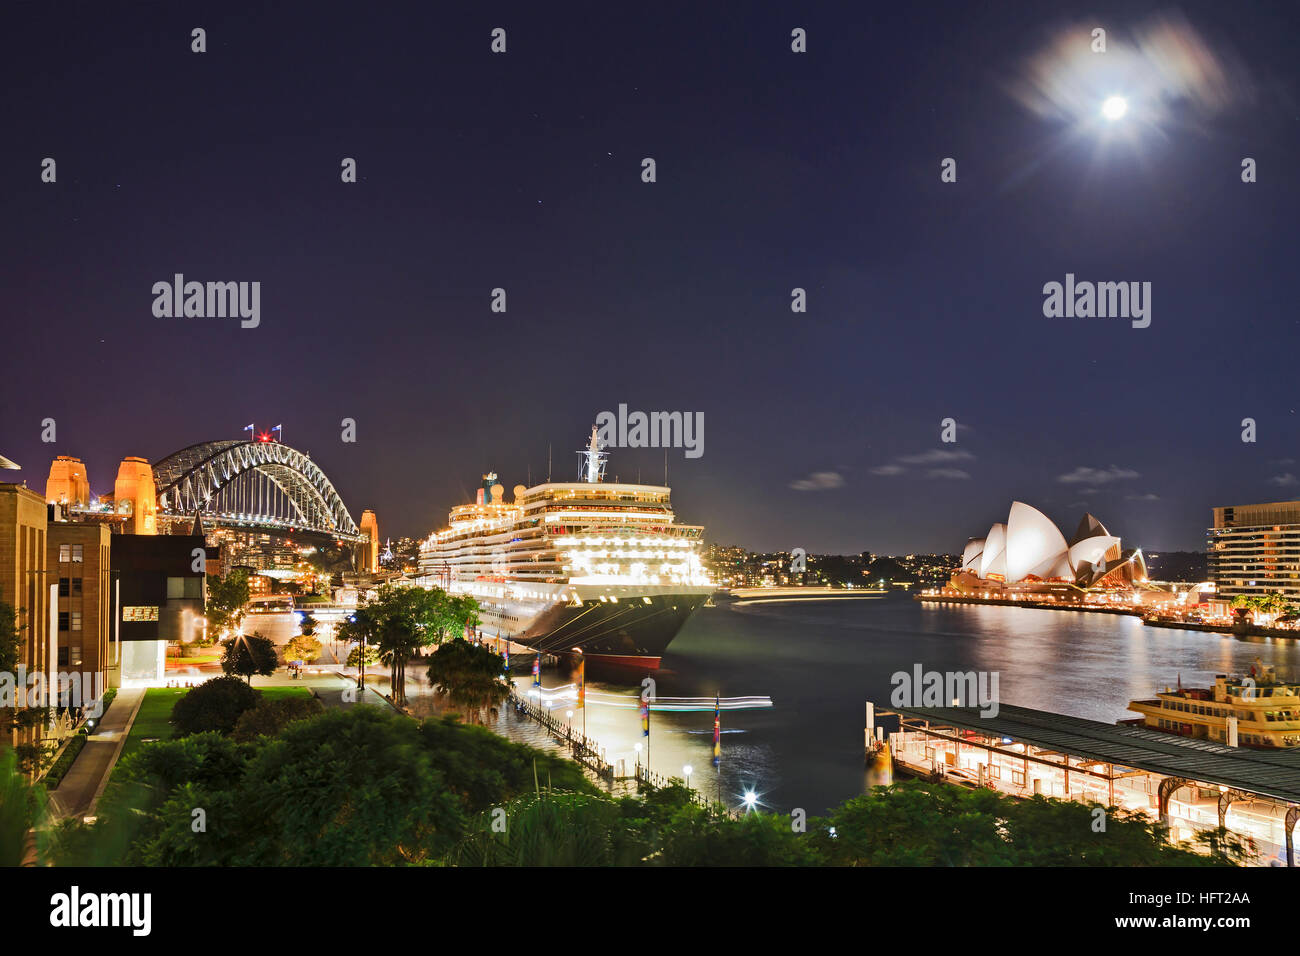 Dark sunset time with full moon above Sydney Harbour, Bridge, overseas passenger terminal and circular quay ferries - Stock Image